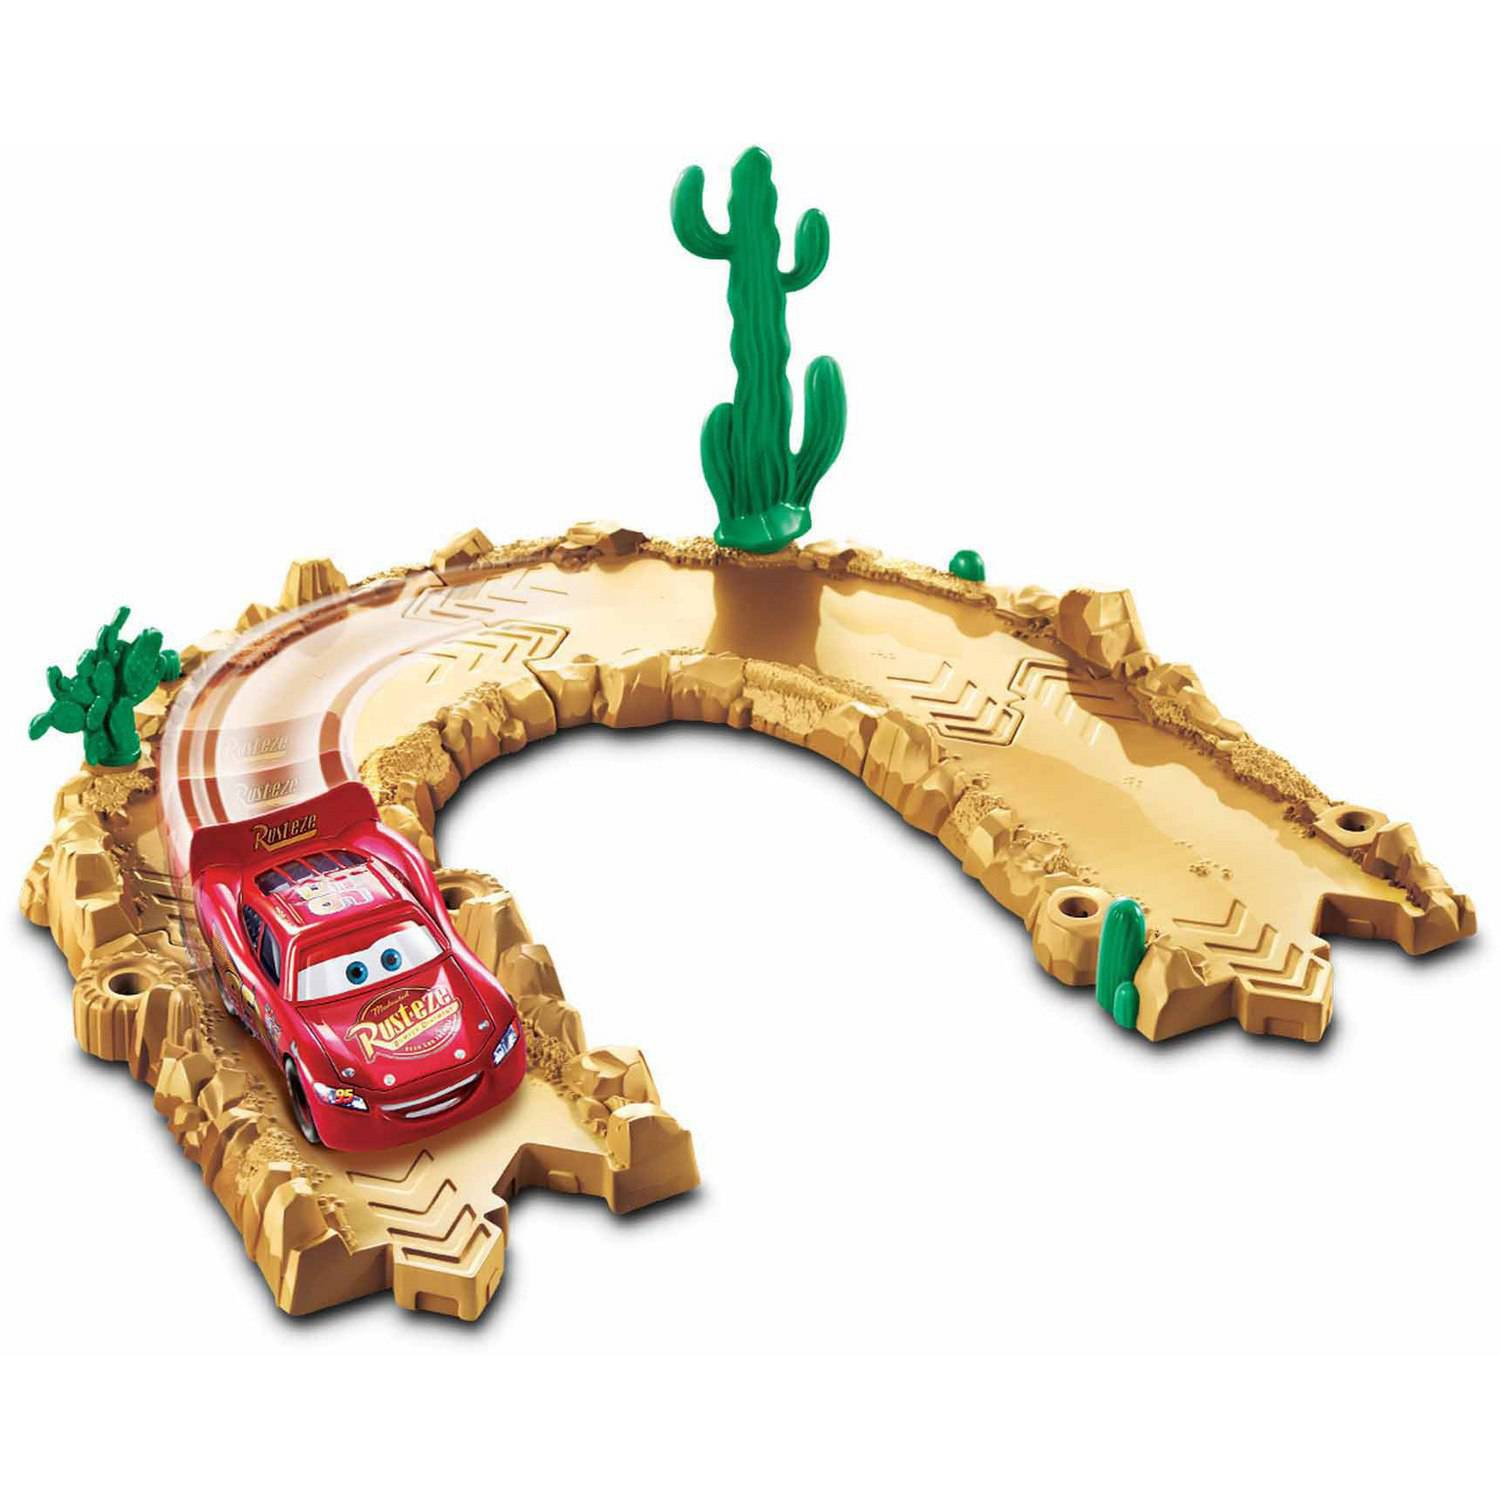 Disney/Pixar Cars Story Sets Willy's Butte Track Track Pack